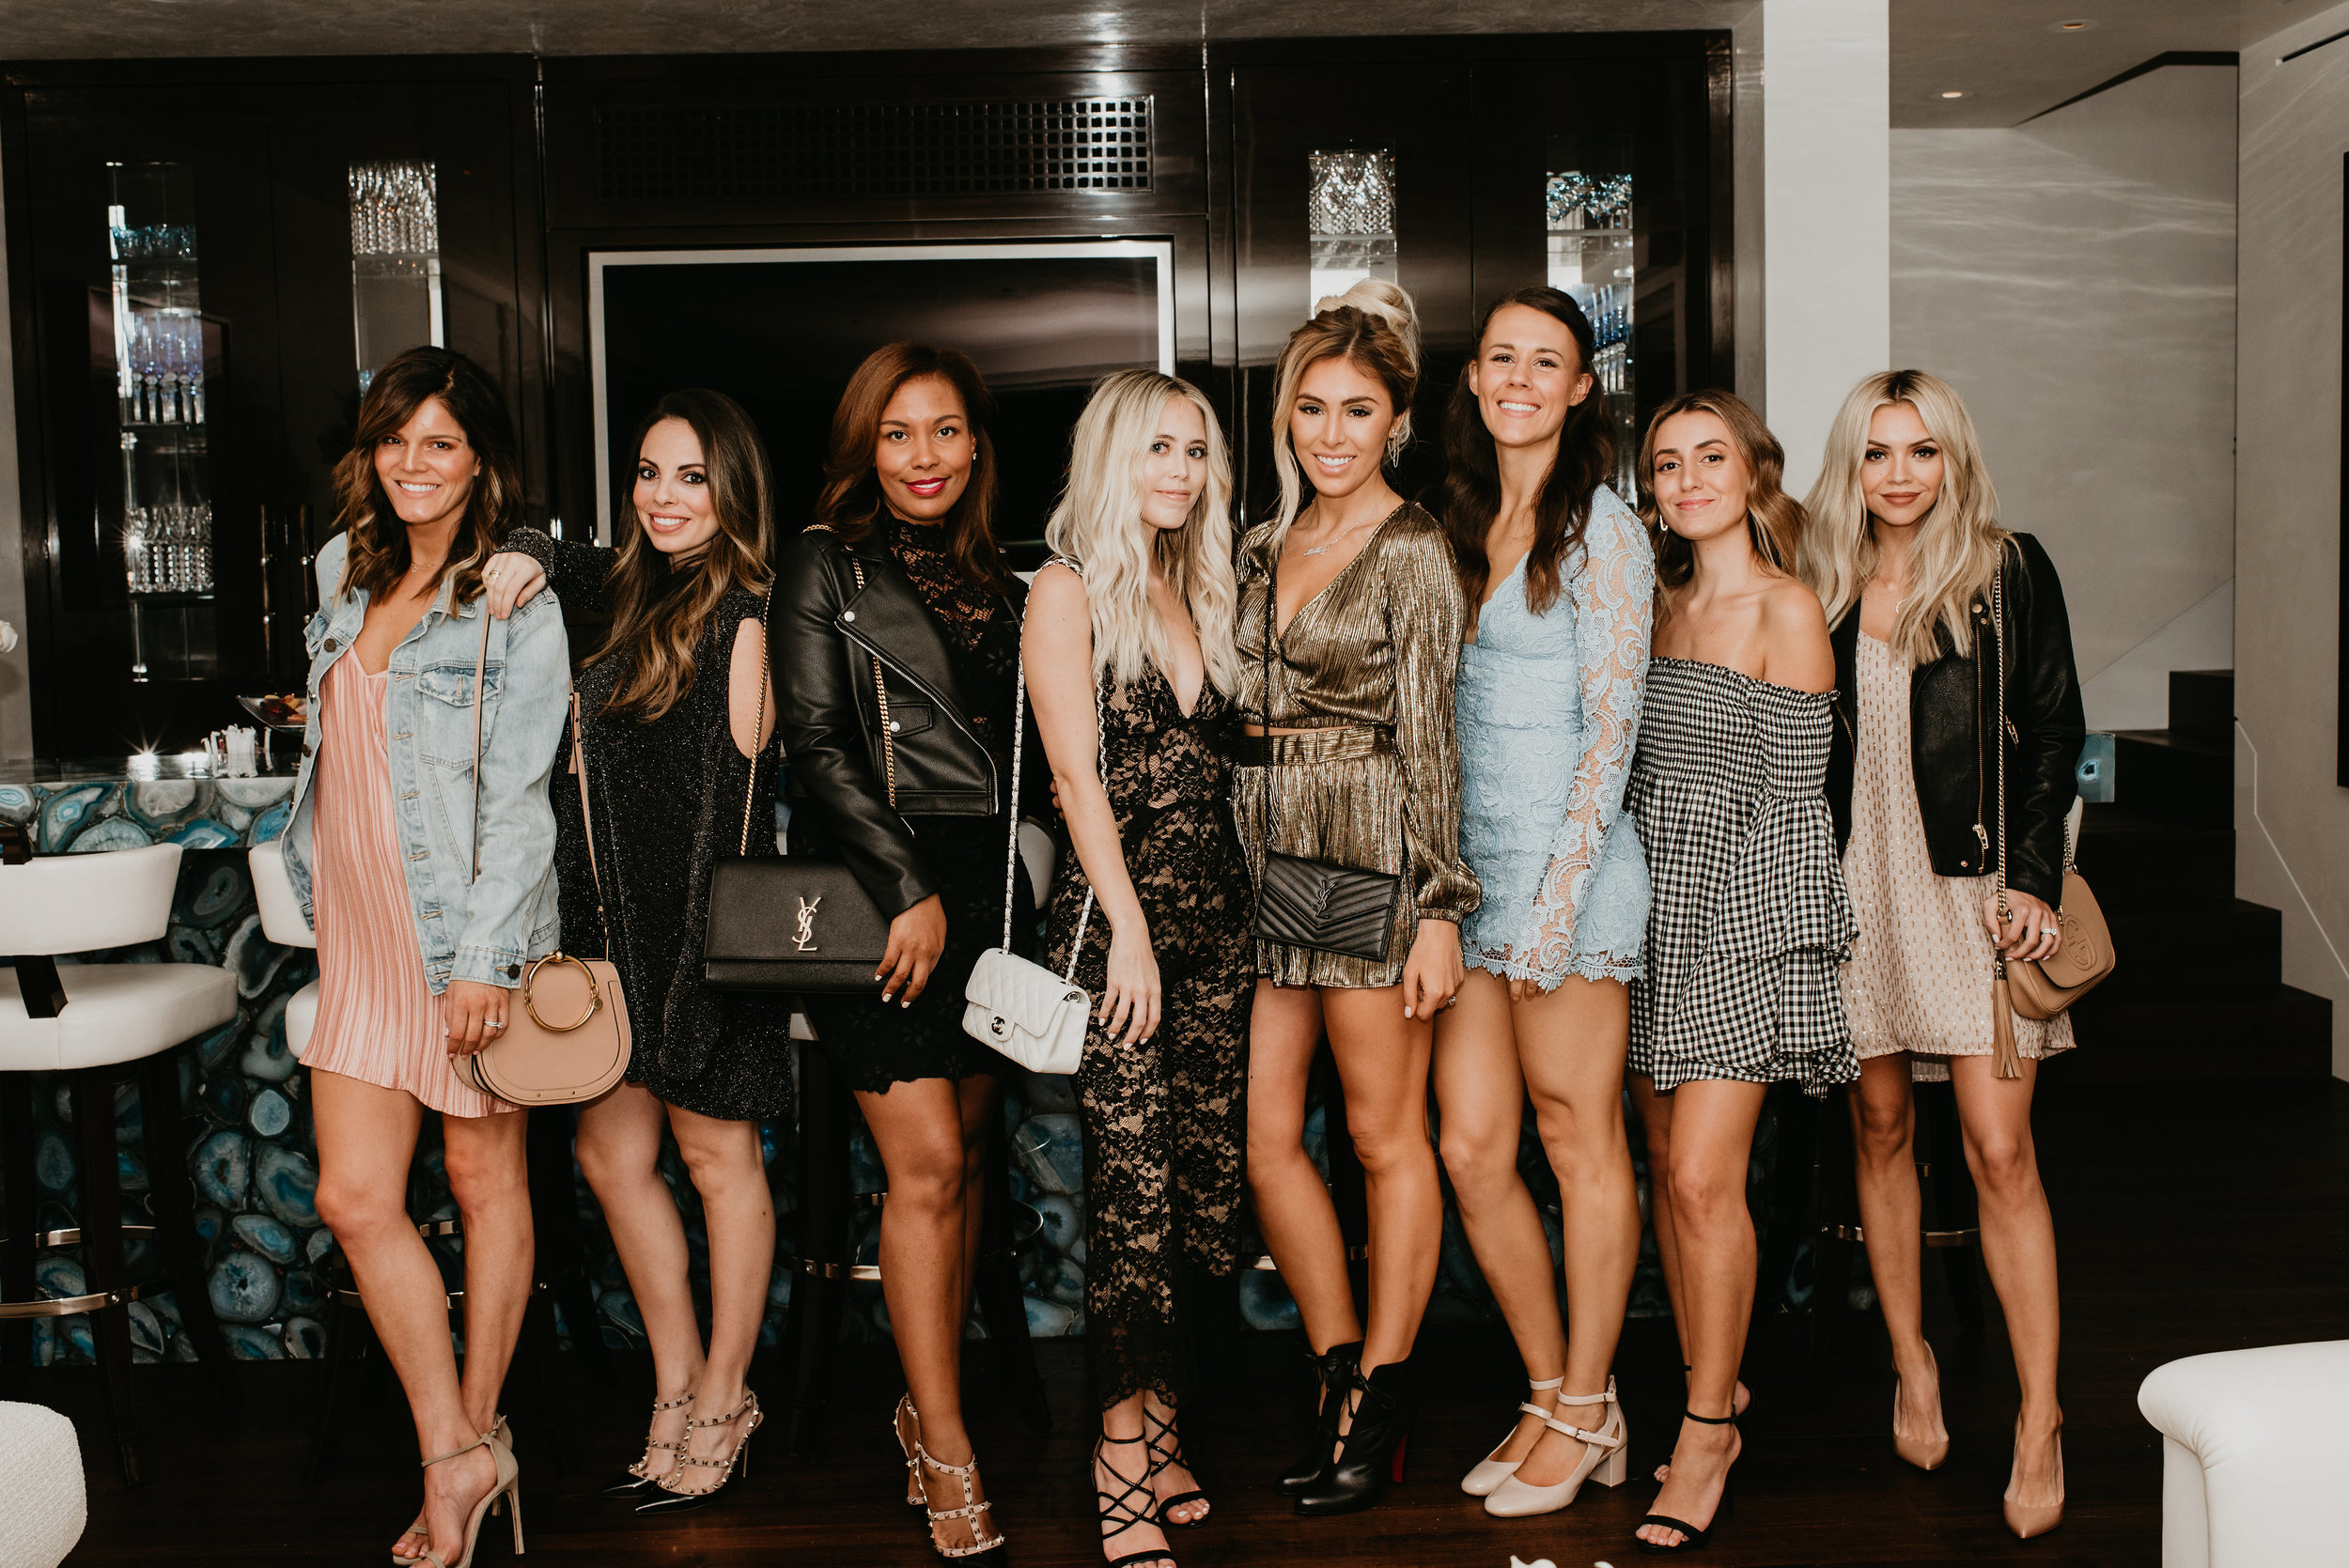 Everyone dressed up for girls night out in Laguna Beach